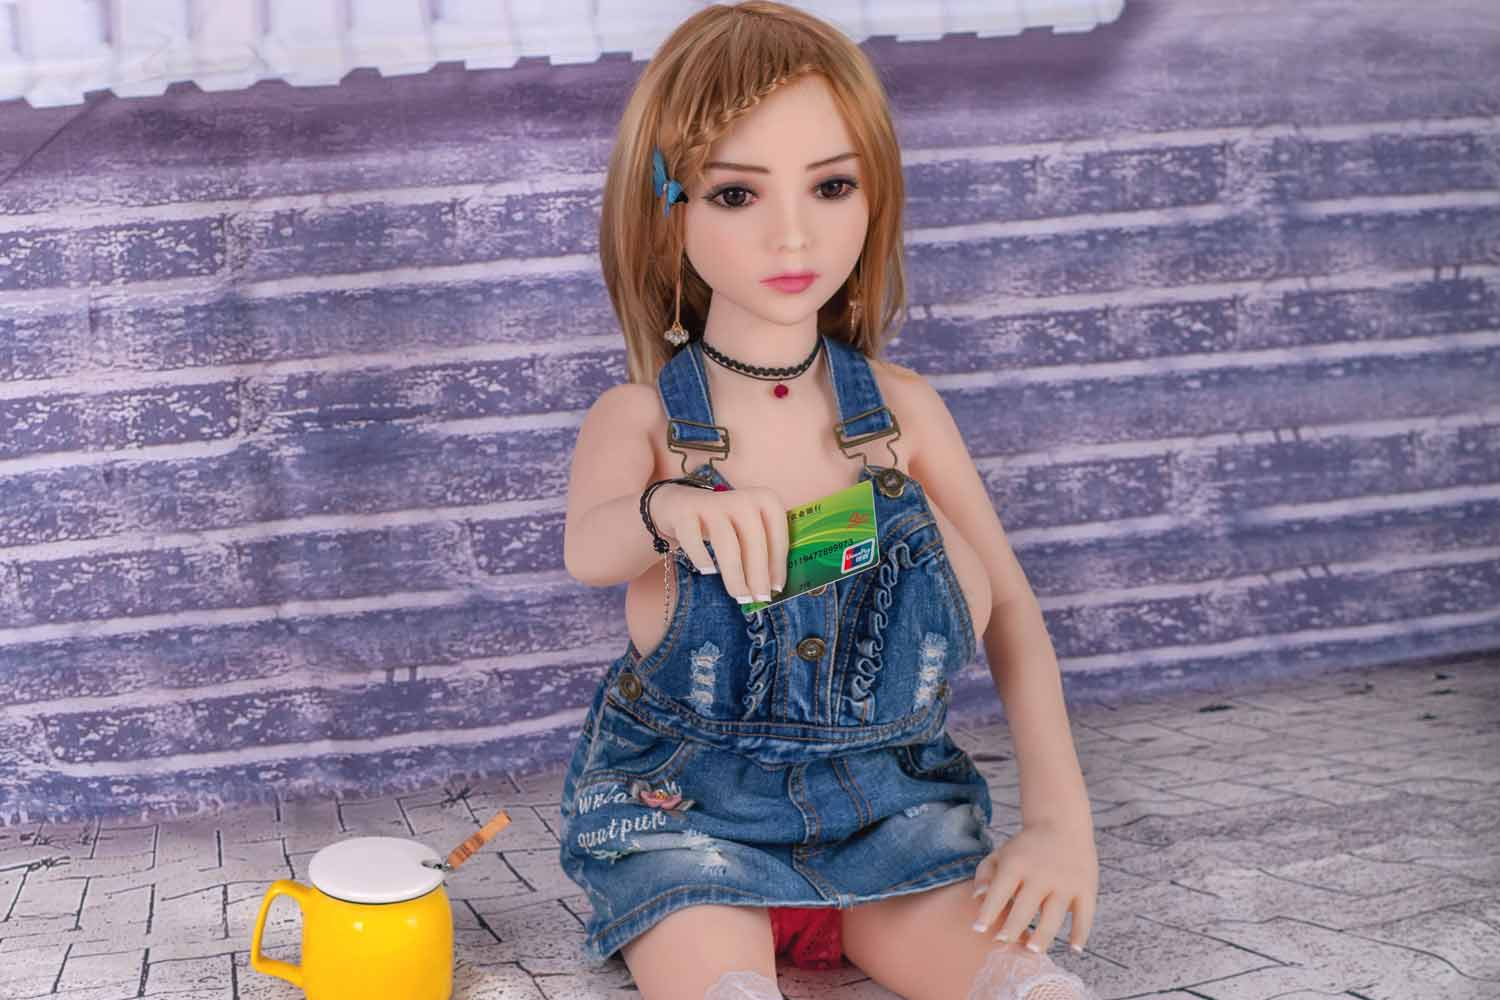 Mini sex doll with bank card in hand